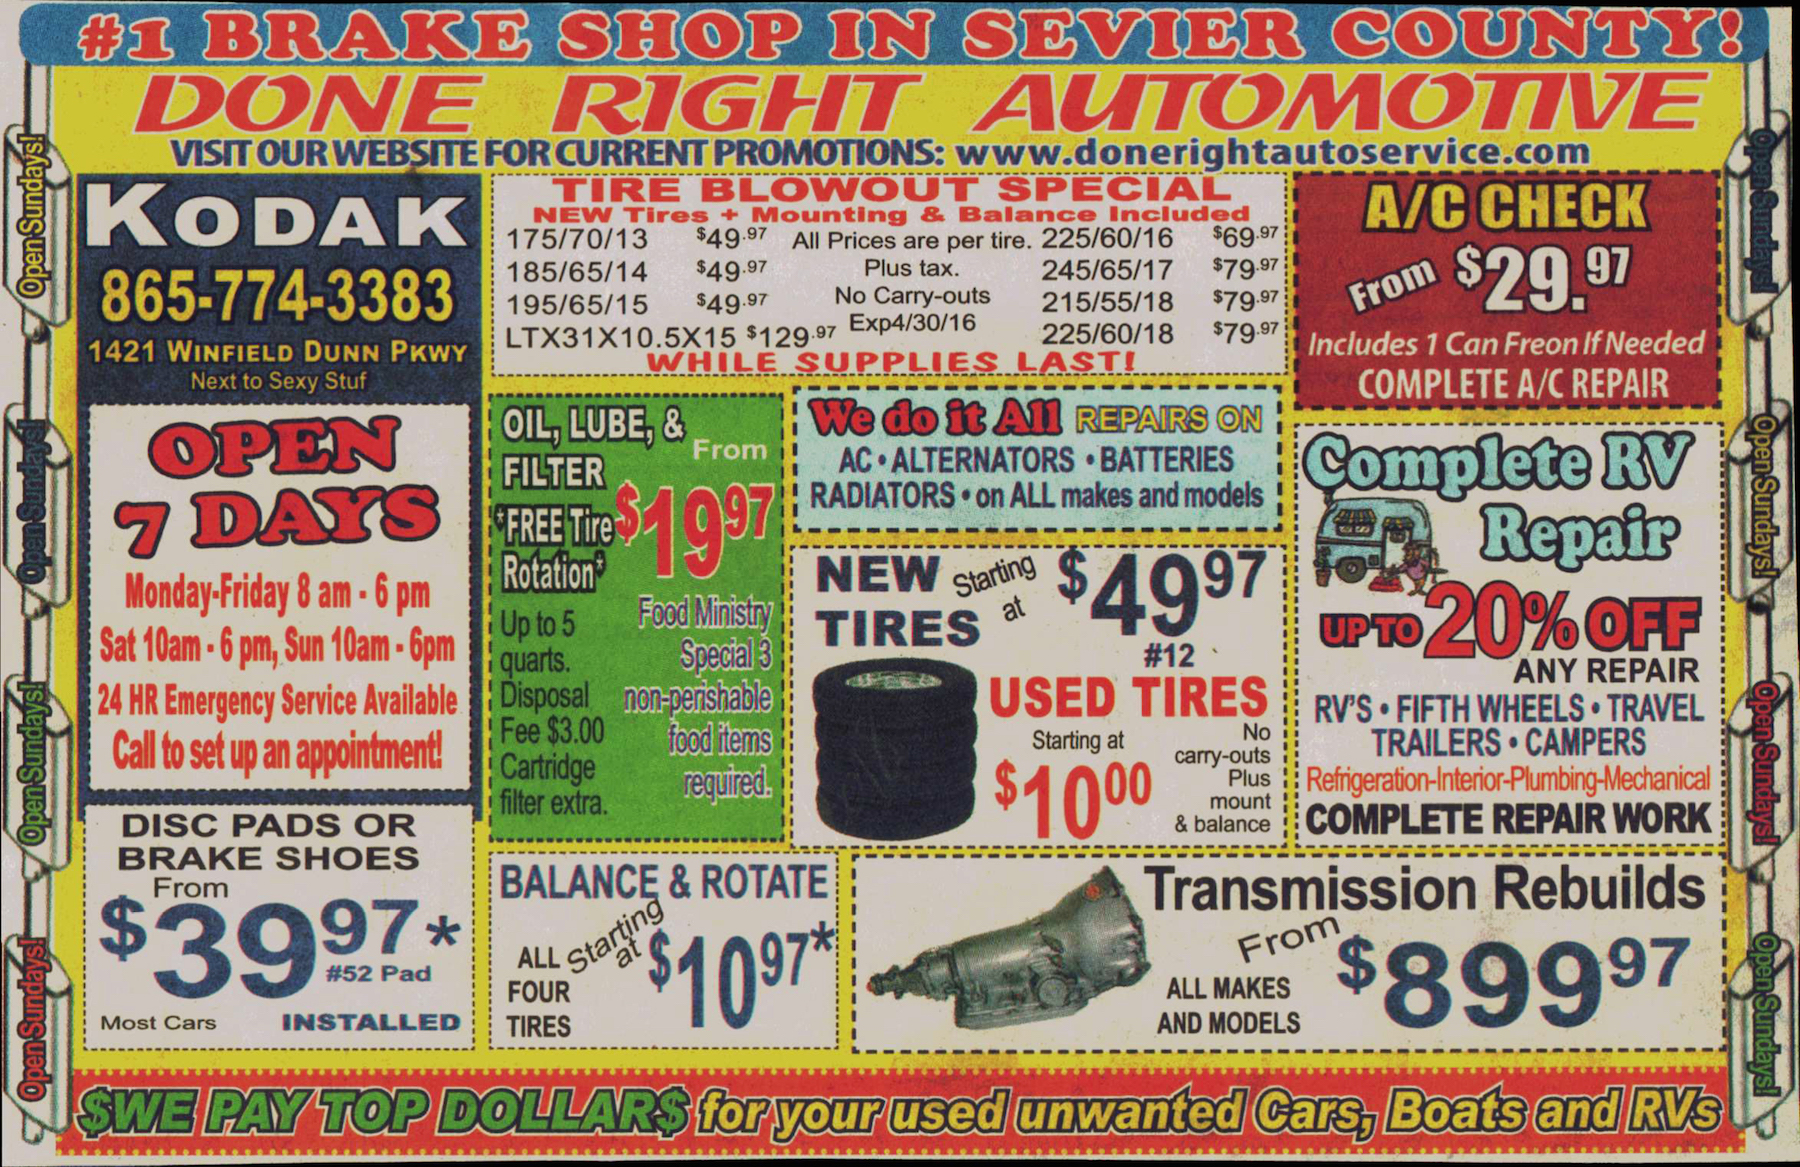 Done Right Automotive Auto Repair in Sevierville TN